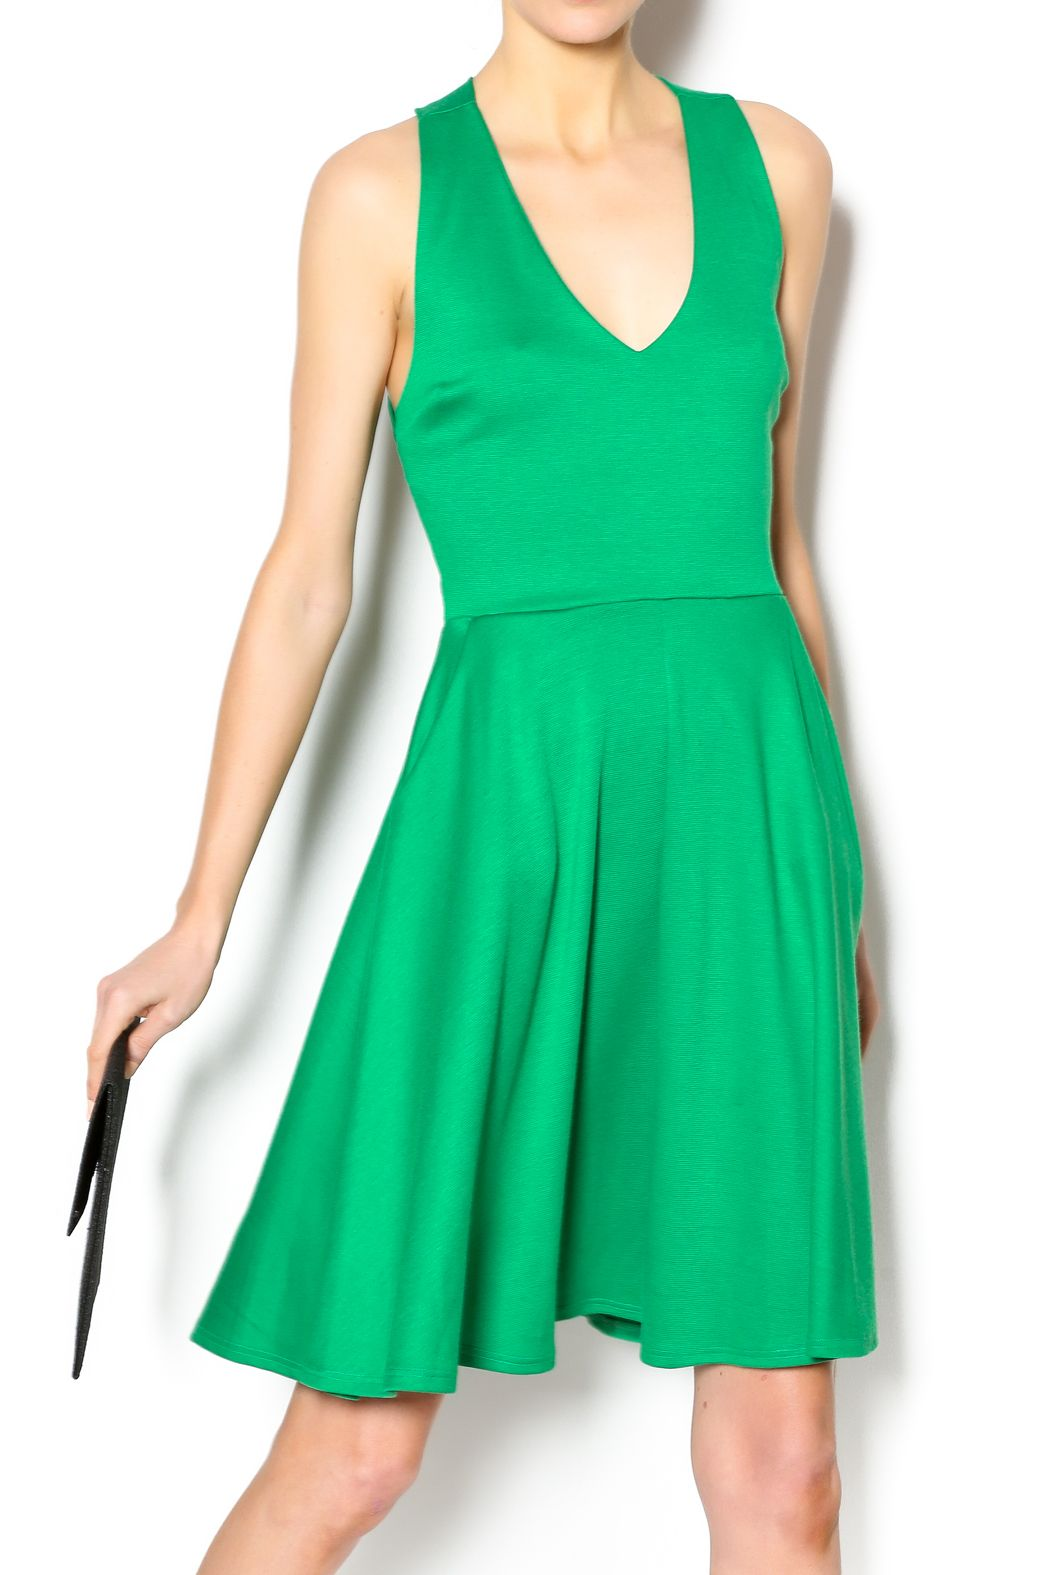 825c0758c174e Block Party · This sleek fit & flare emerald green dress will quickly  become your favorite! The stretch